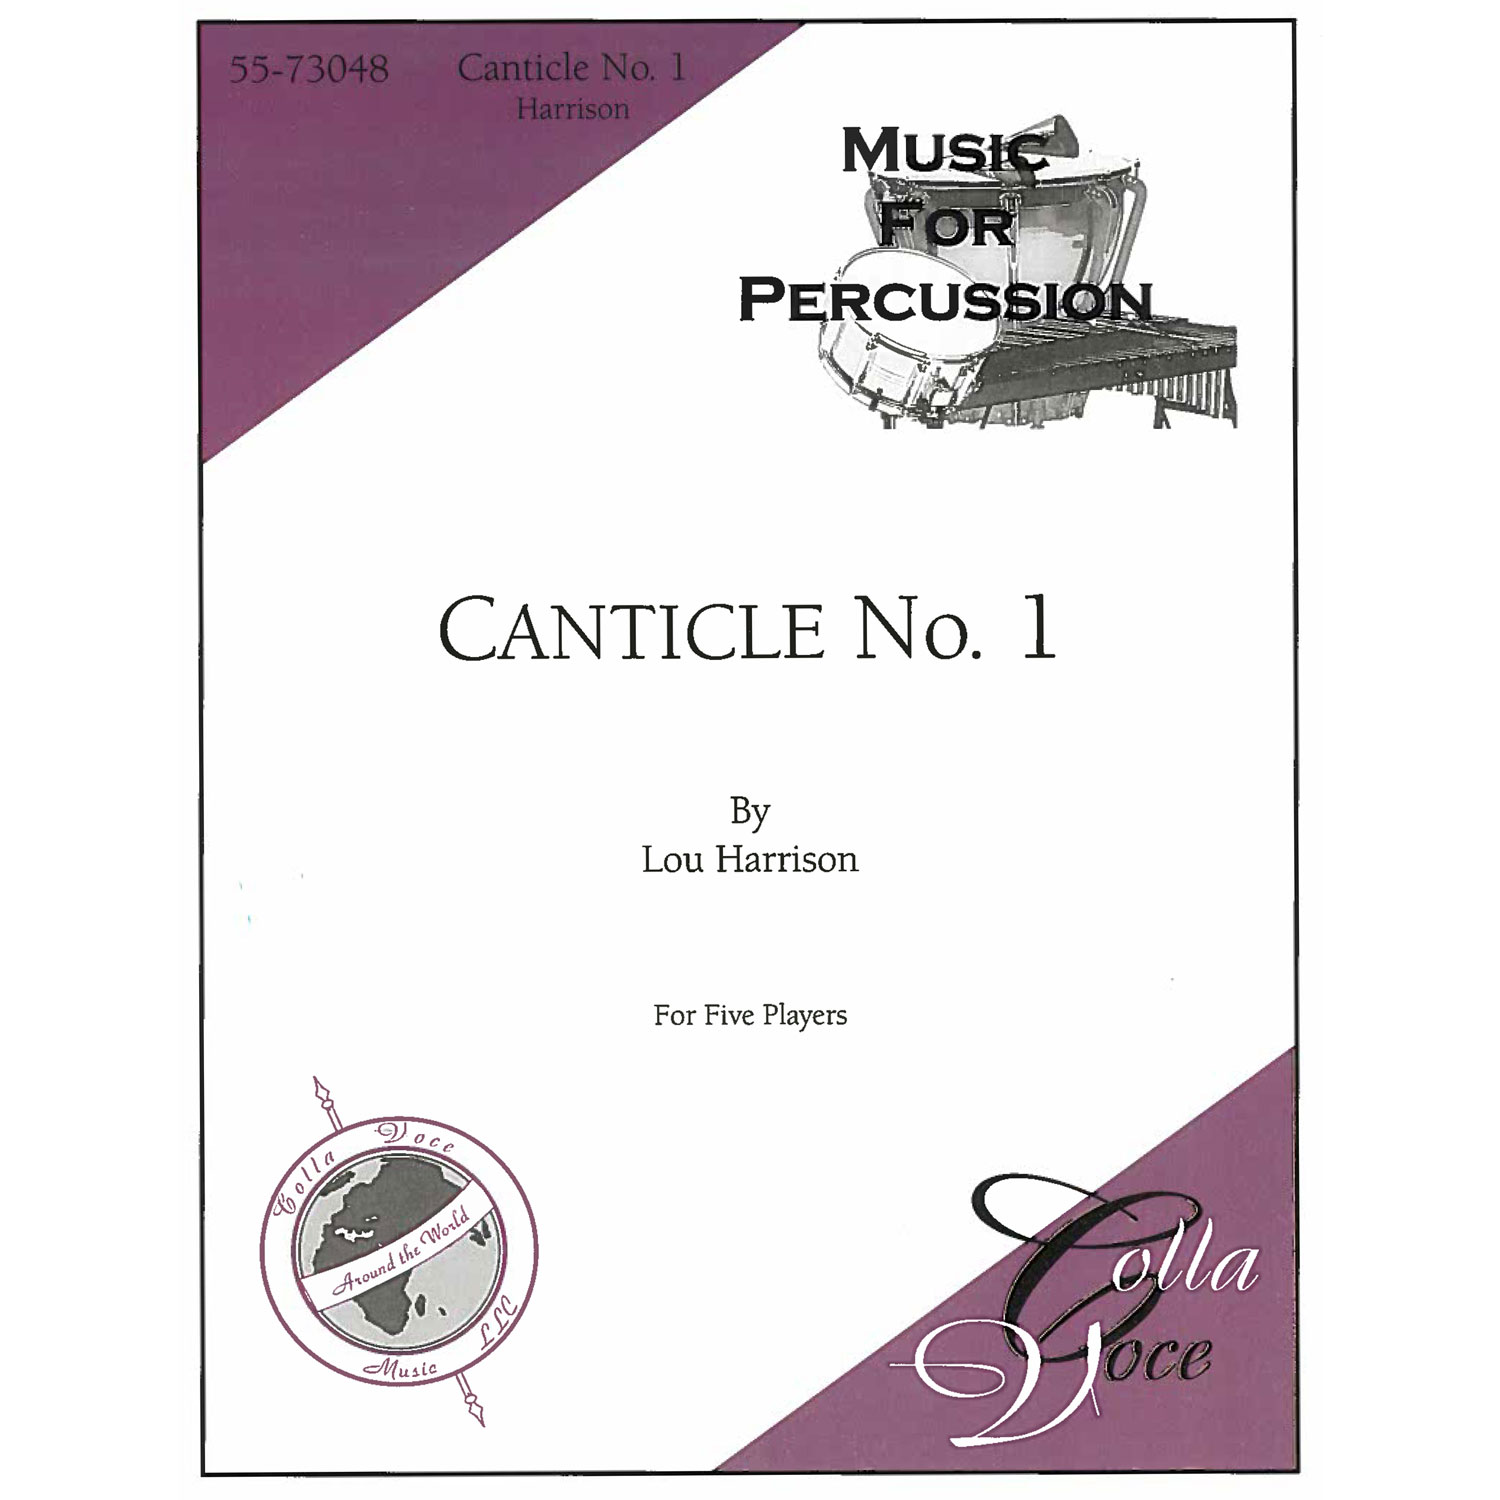 Canticle No. 1 by Lou Harrison